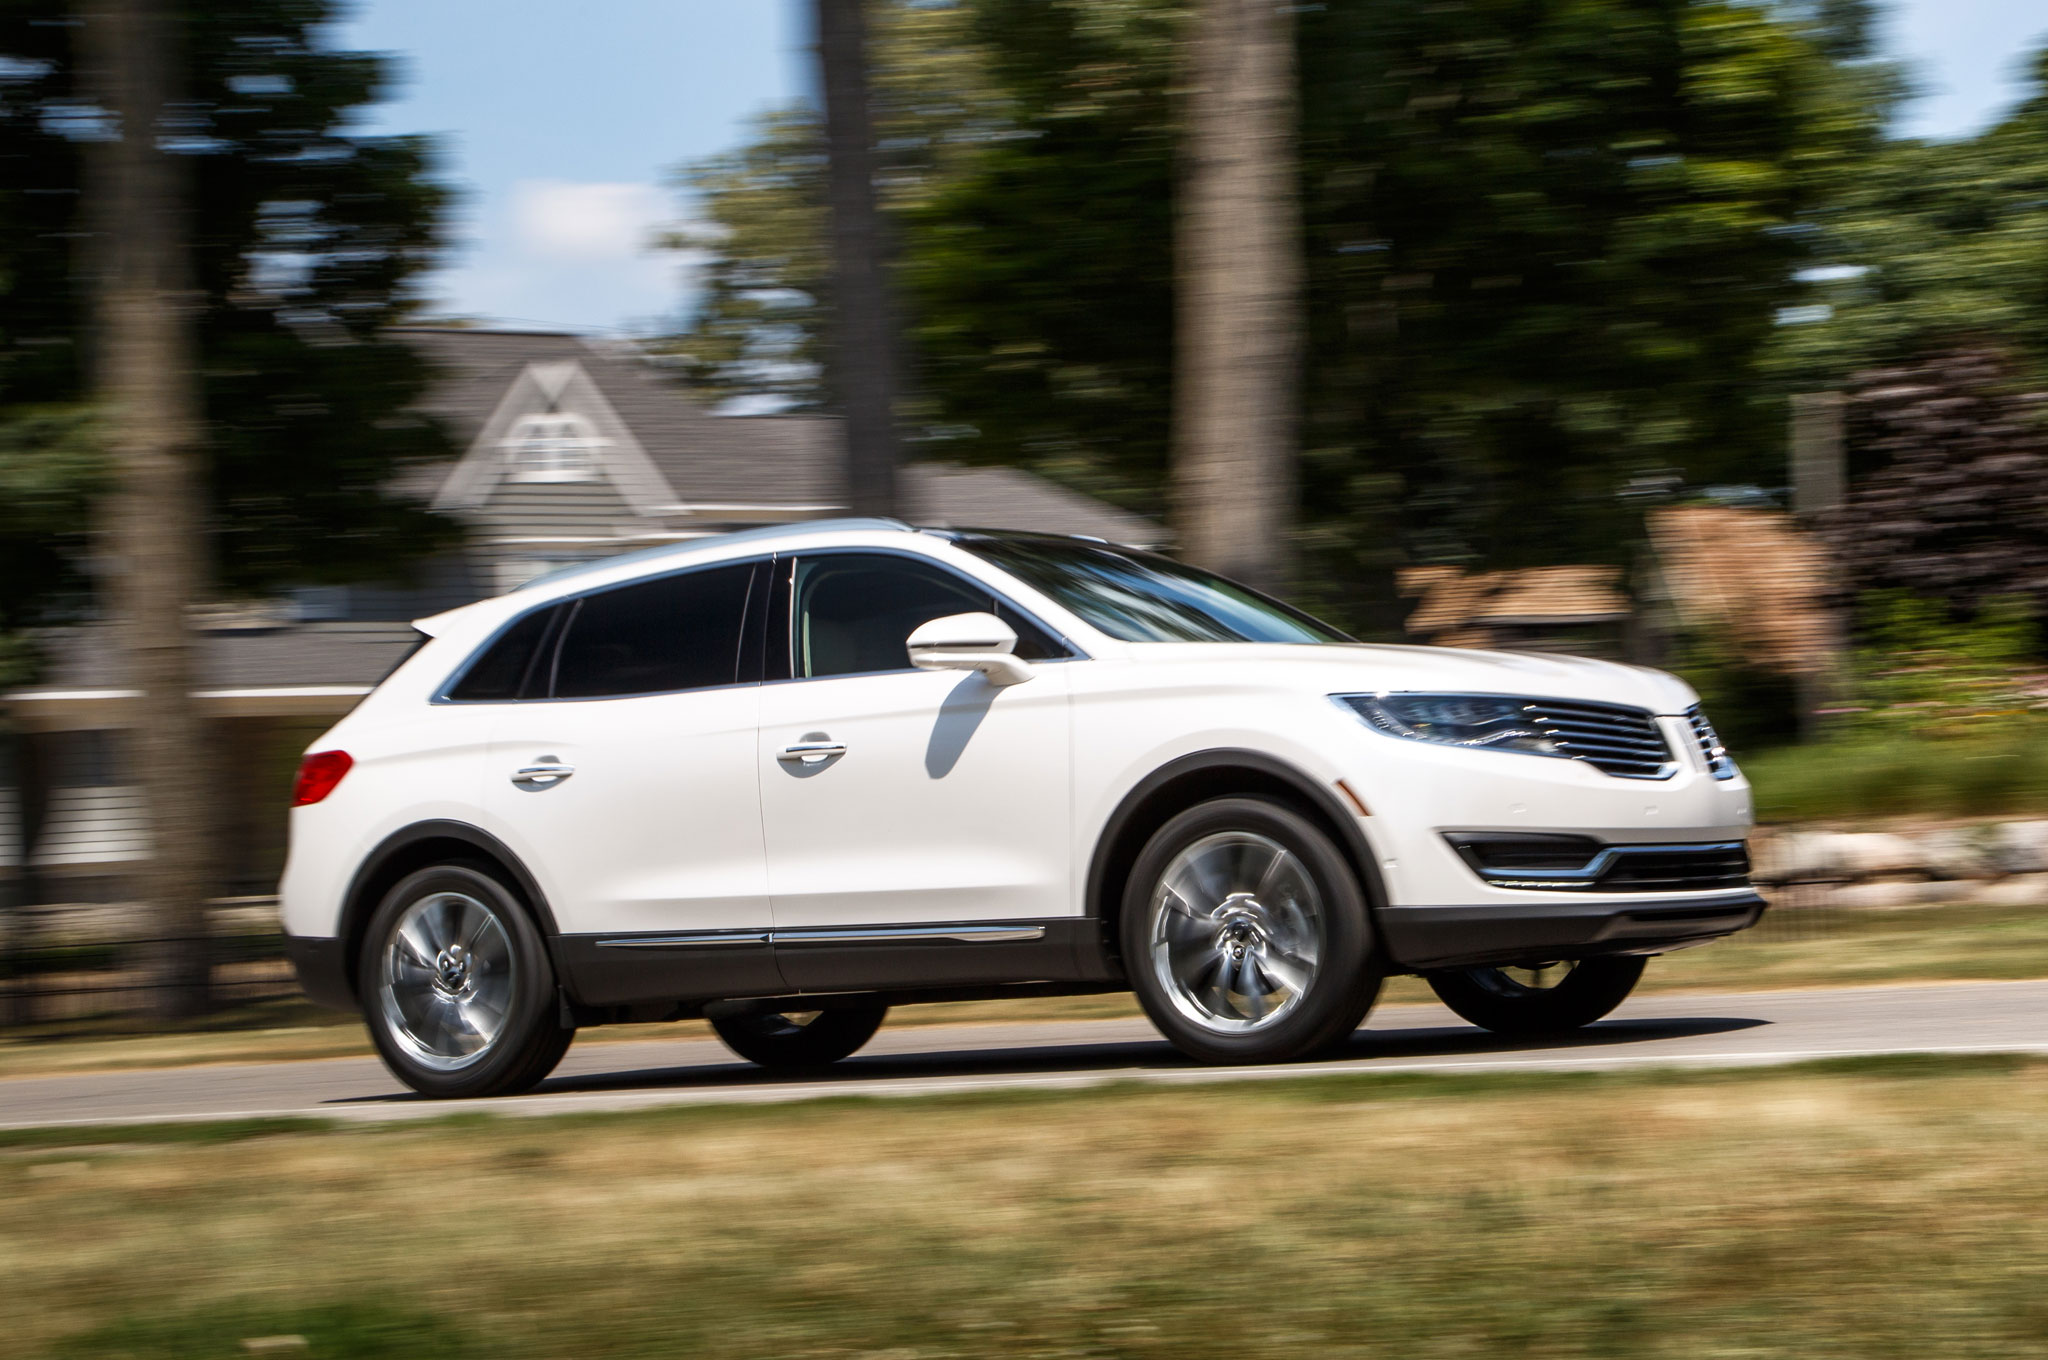 2016 lincoln mkx receives iihs top safety pick award automobile magazine. Black Bedroom Furniture Sets. Home Design Ideas